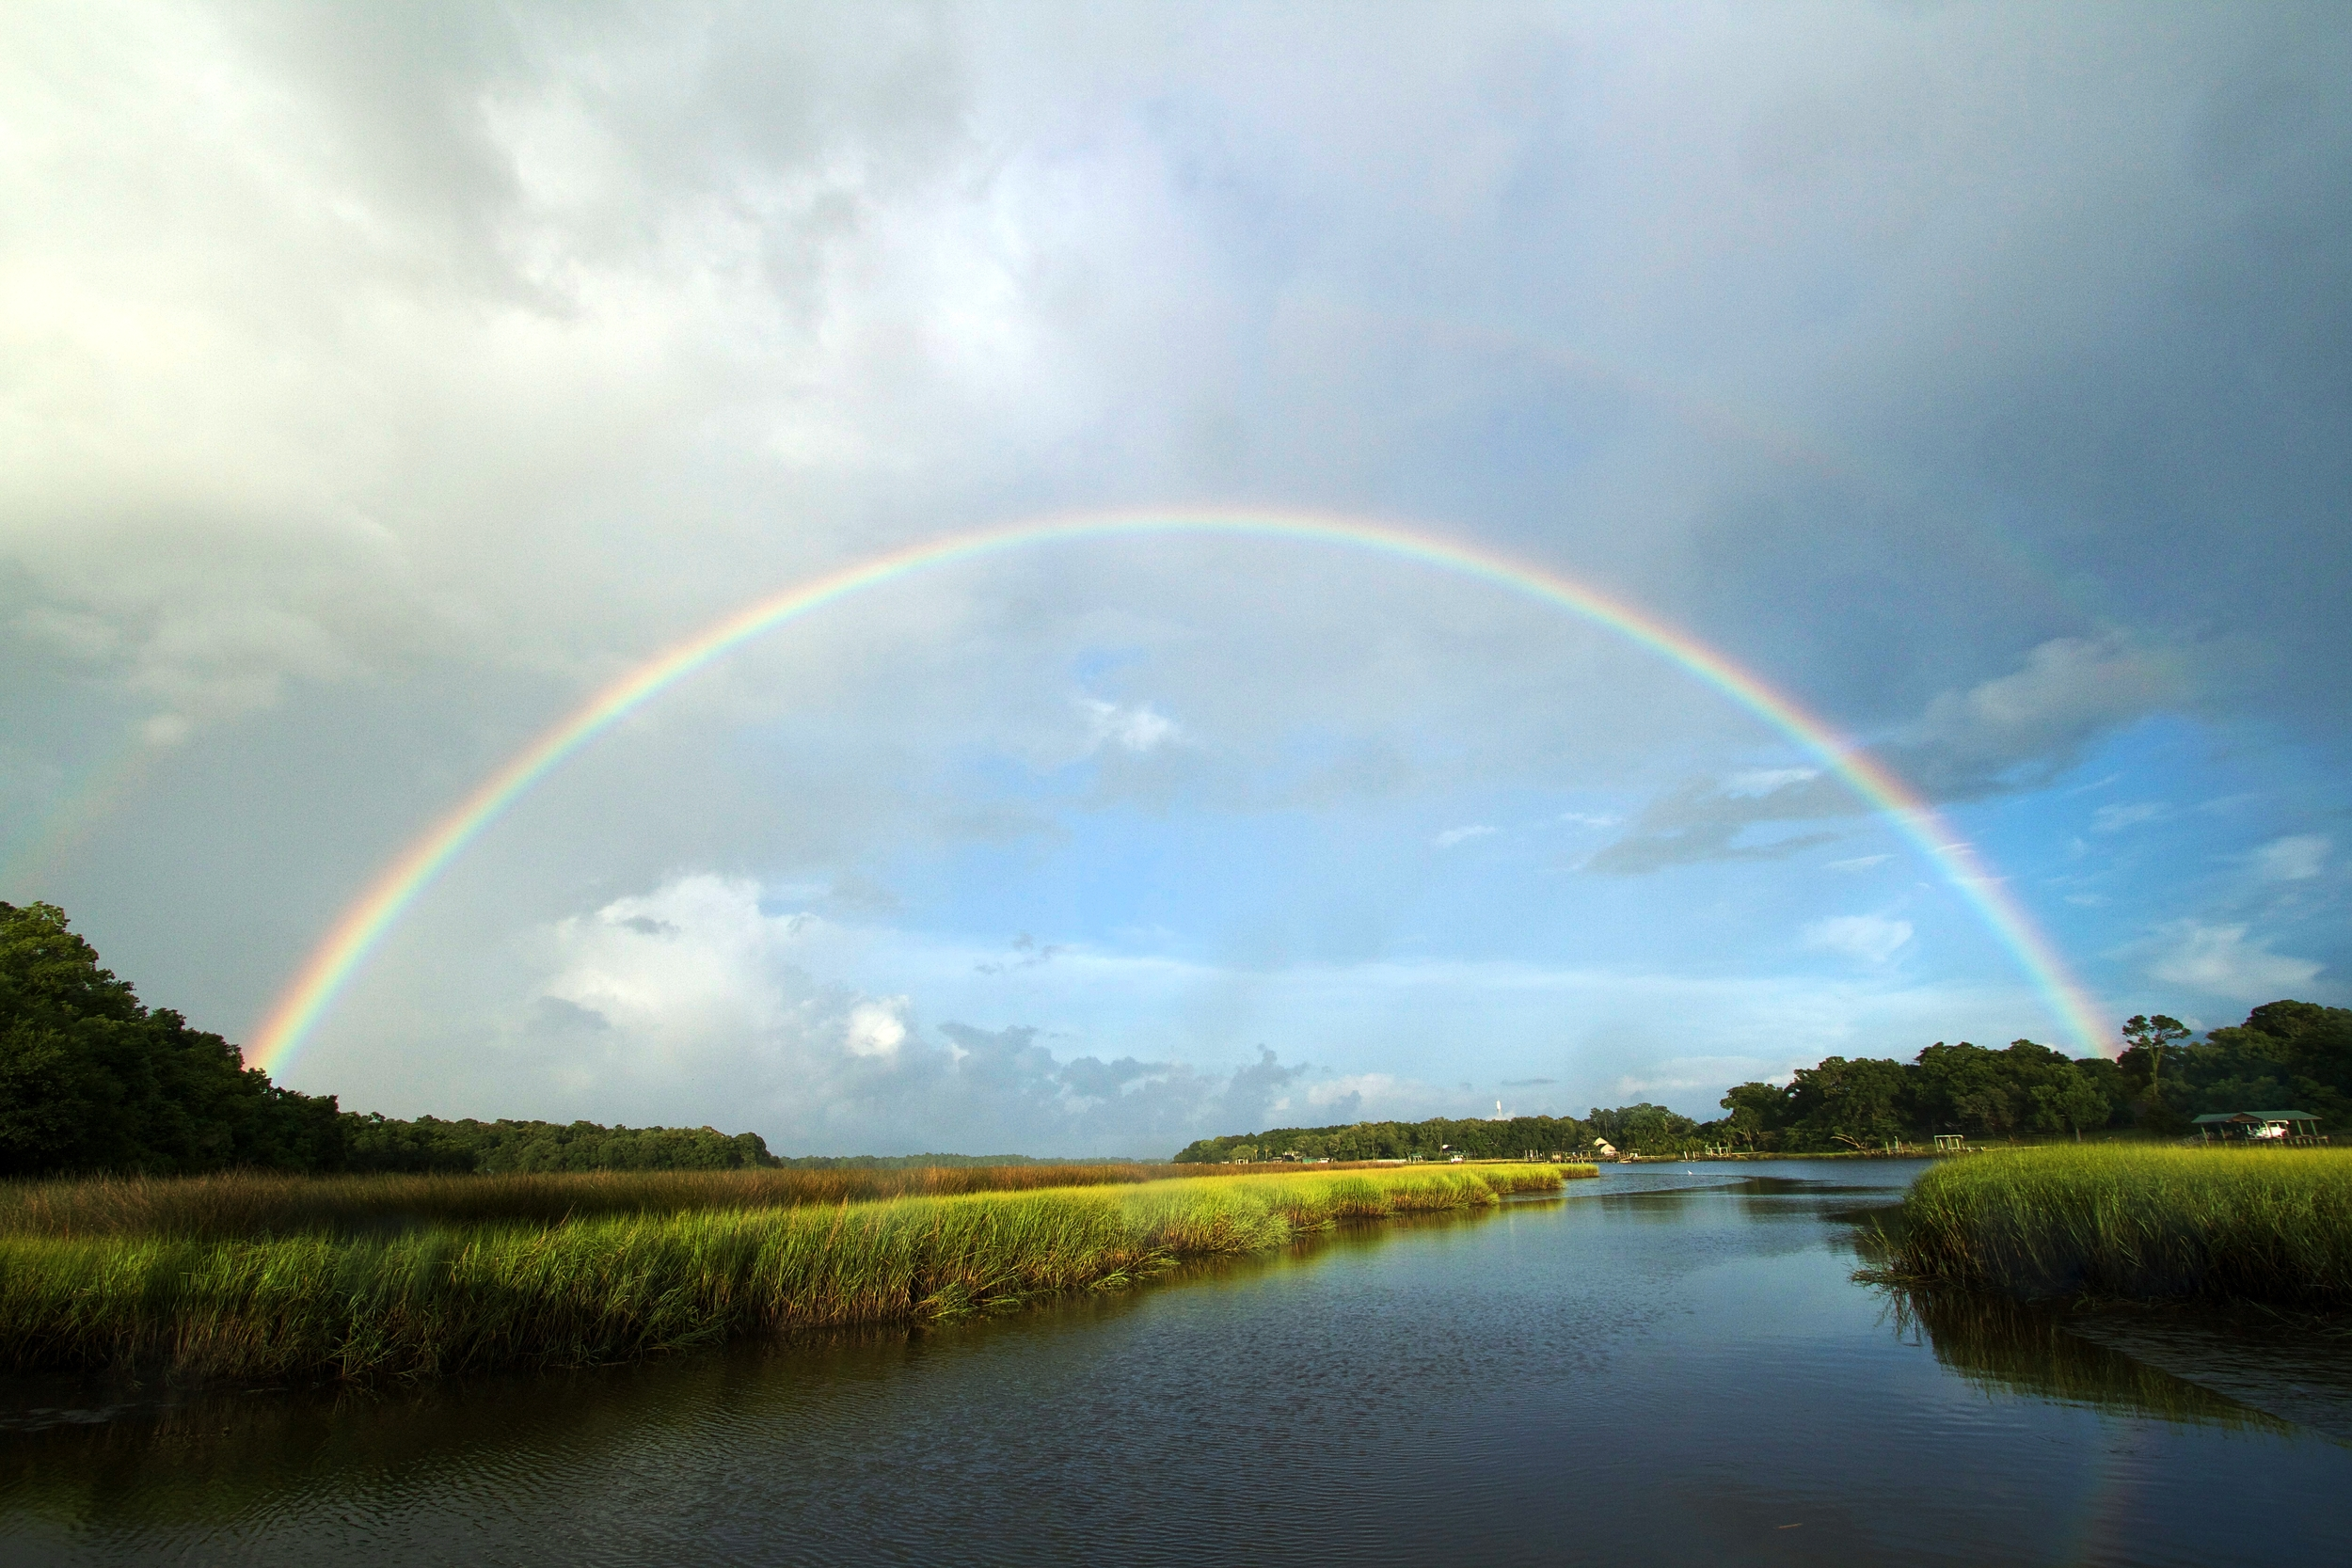 """Last year's Rainbow on the Broward reminded me of His promise, now the """"rainbow"""" has been hijacked for political correctness.."""